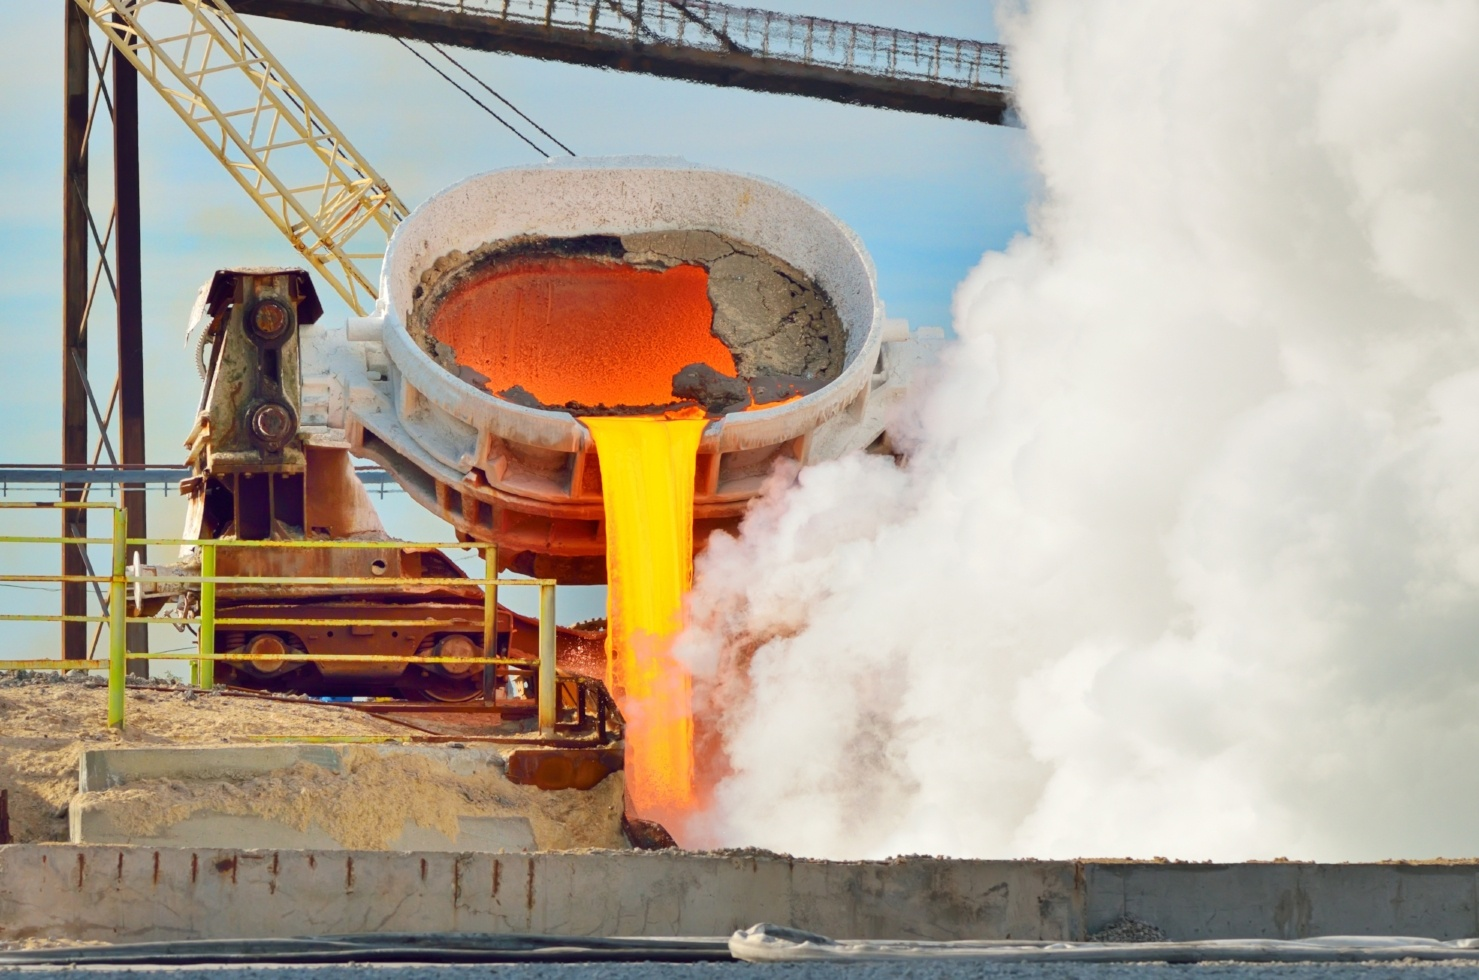 iStock-450909797 Pouring Steel Outdoors-732940-edited.jpg